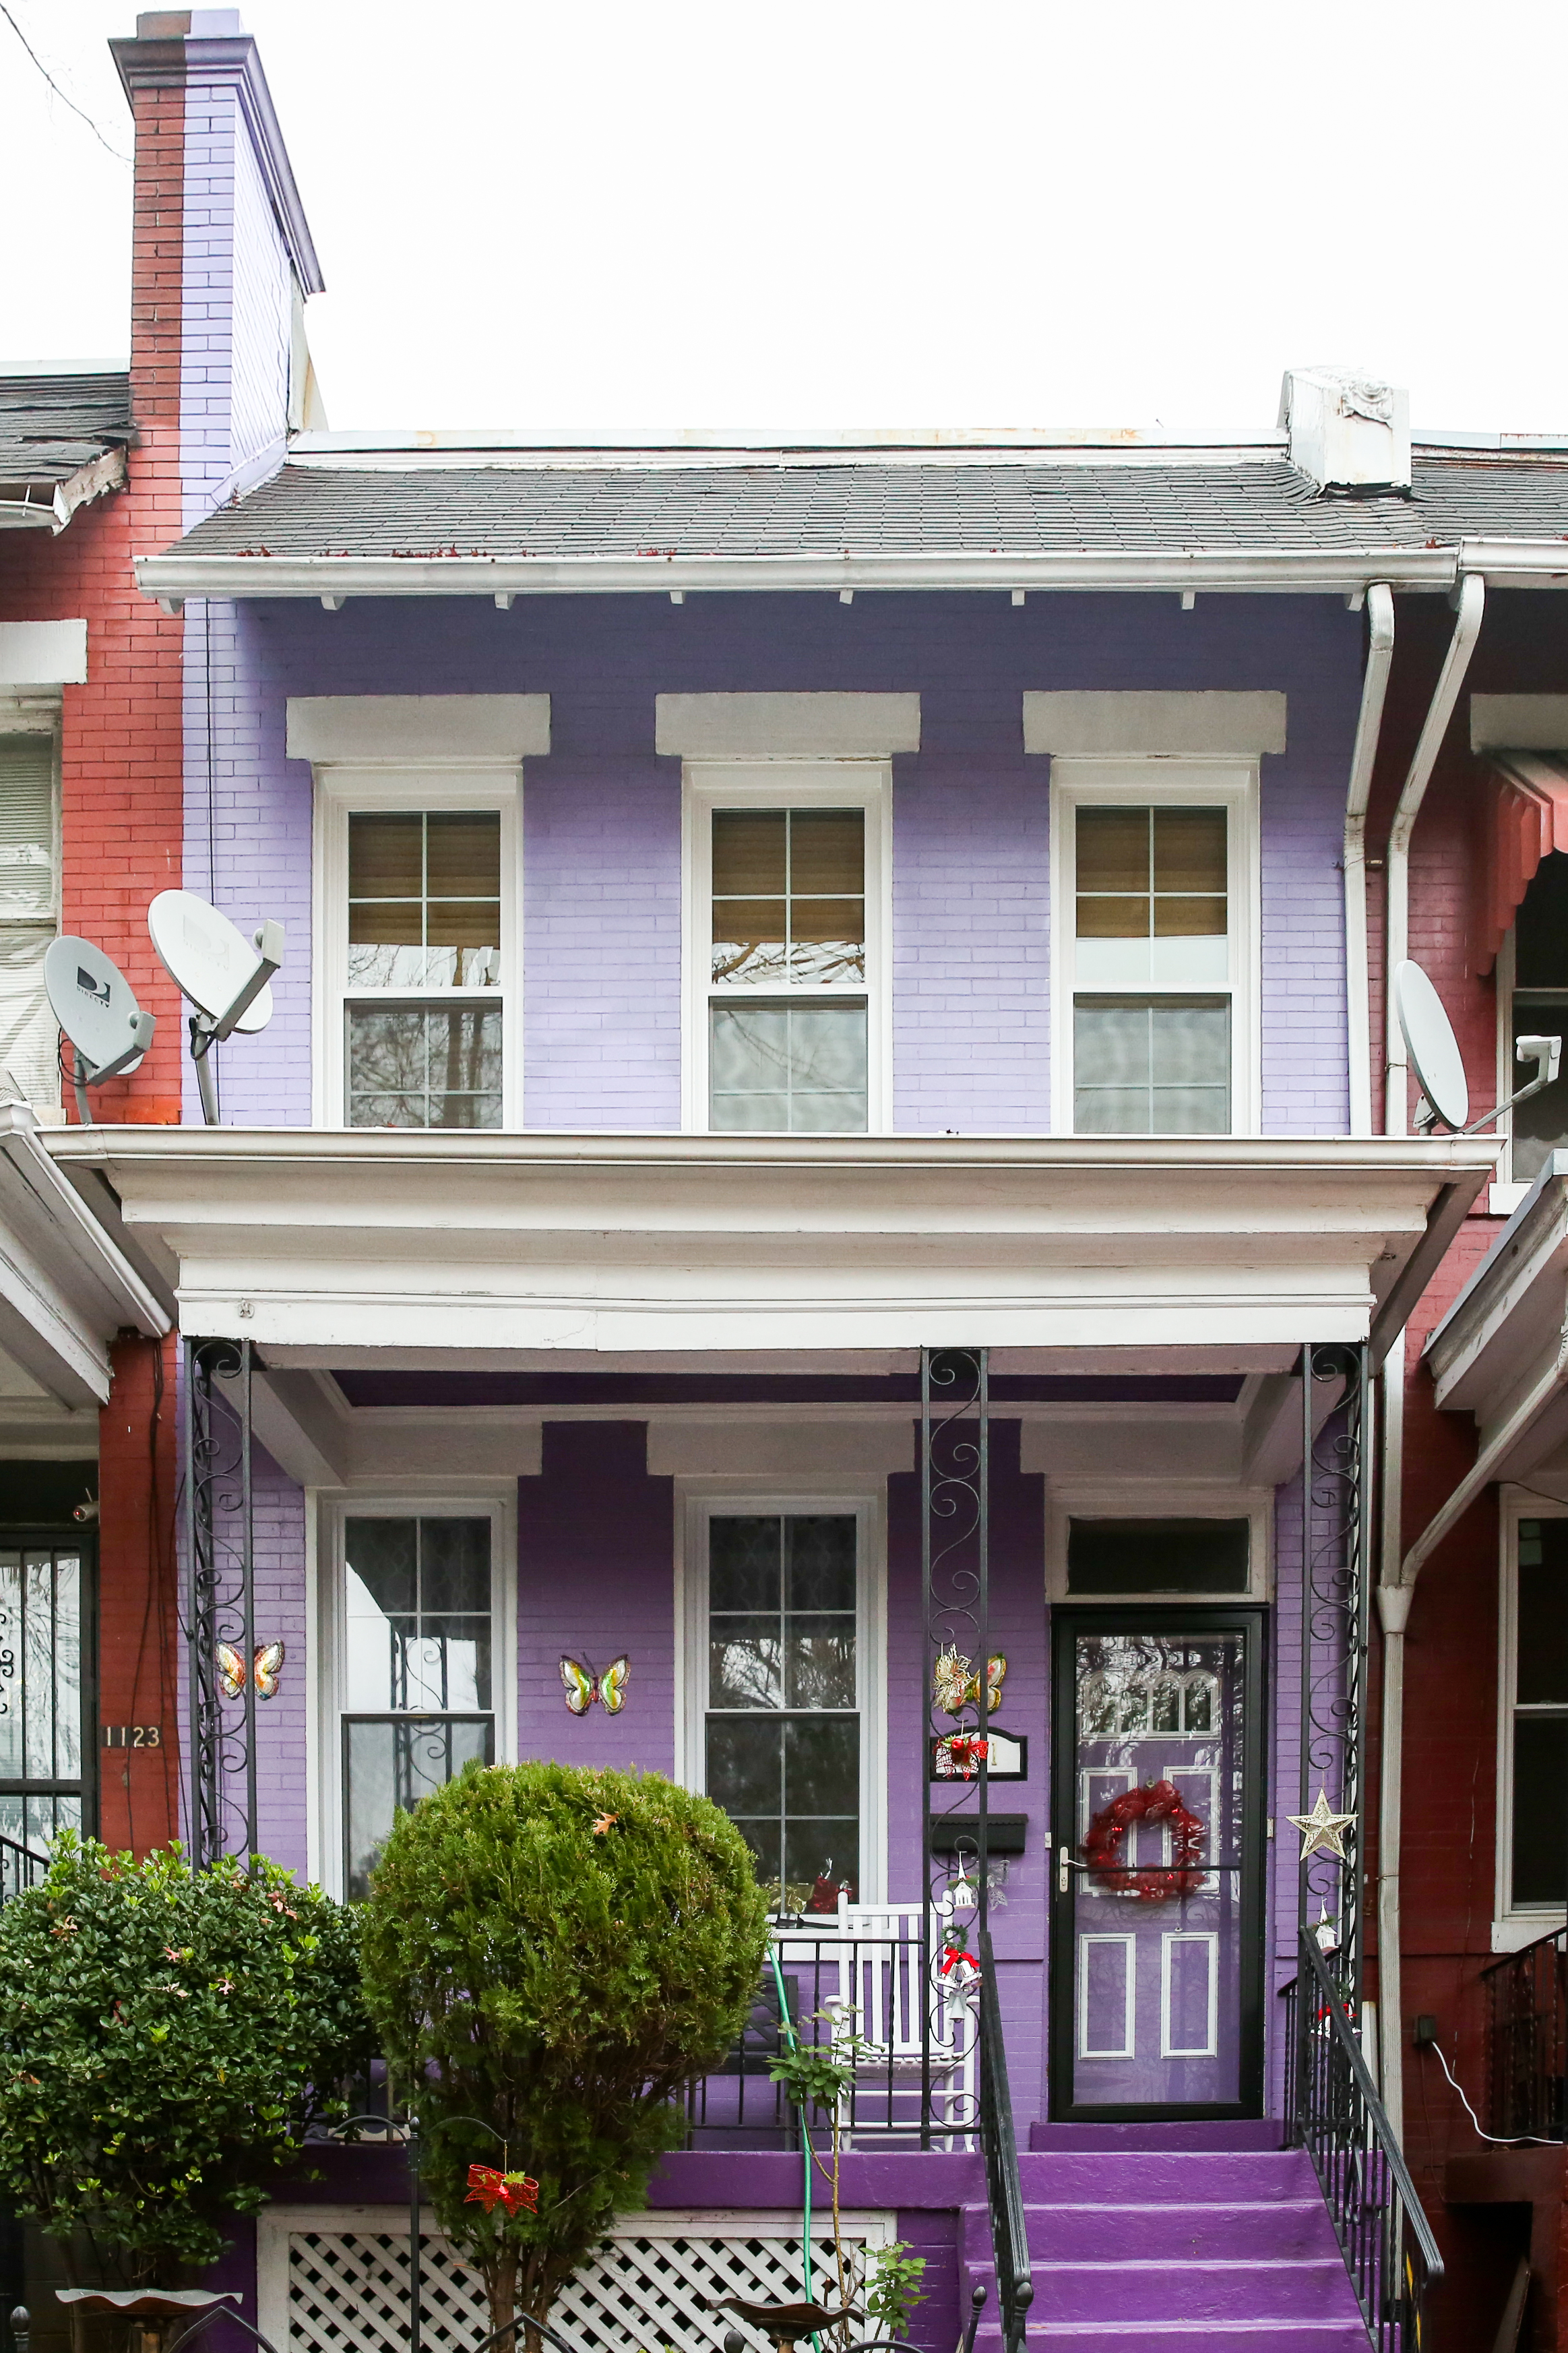 Pantone's color of the year was Ultra Violet, but these homeowners were ahead of the curve. (Amanda Andrade-Rhoades/DC Refined)